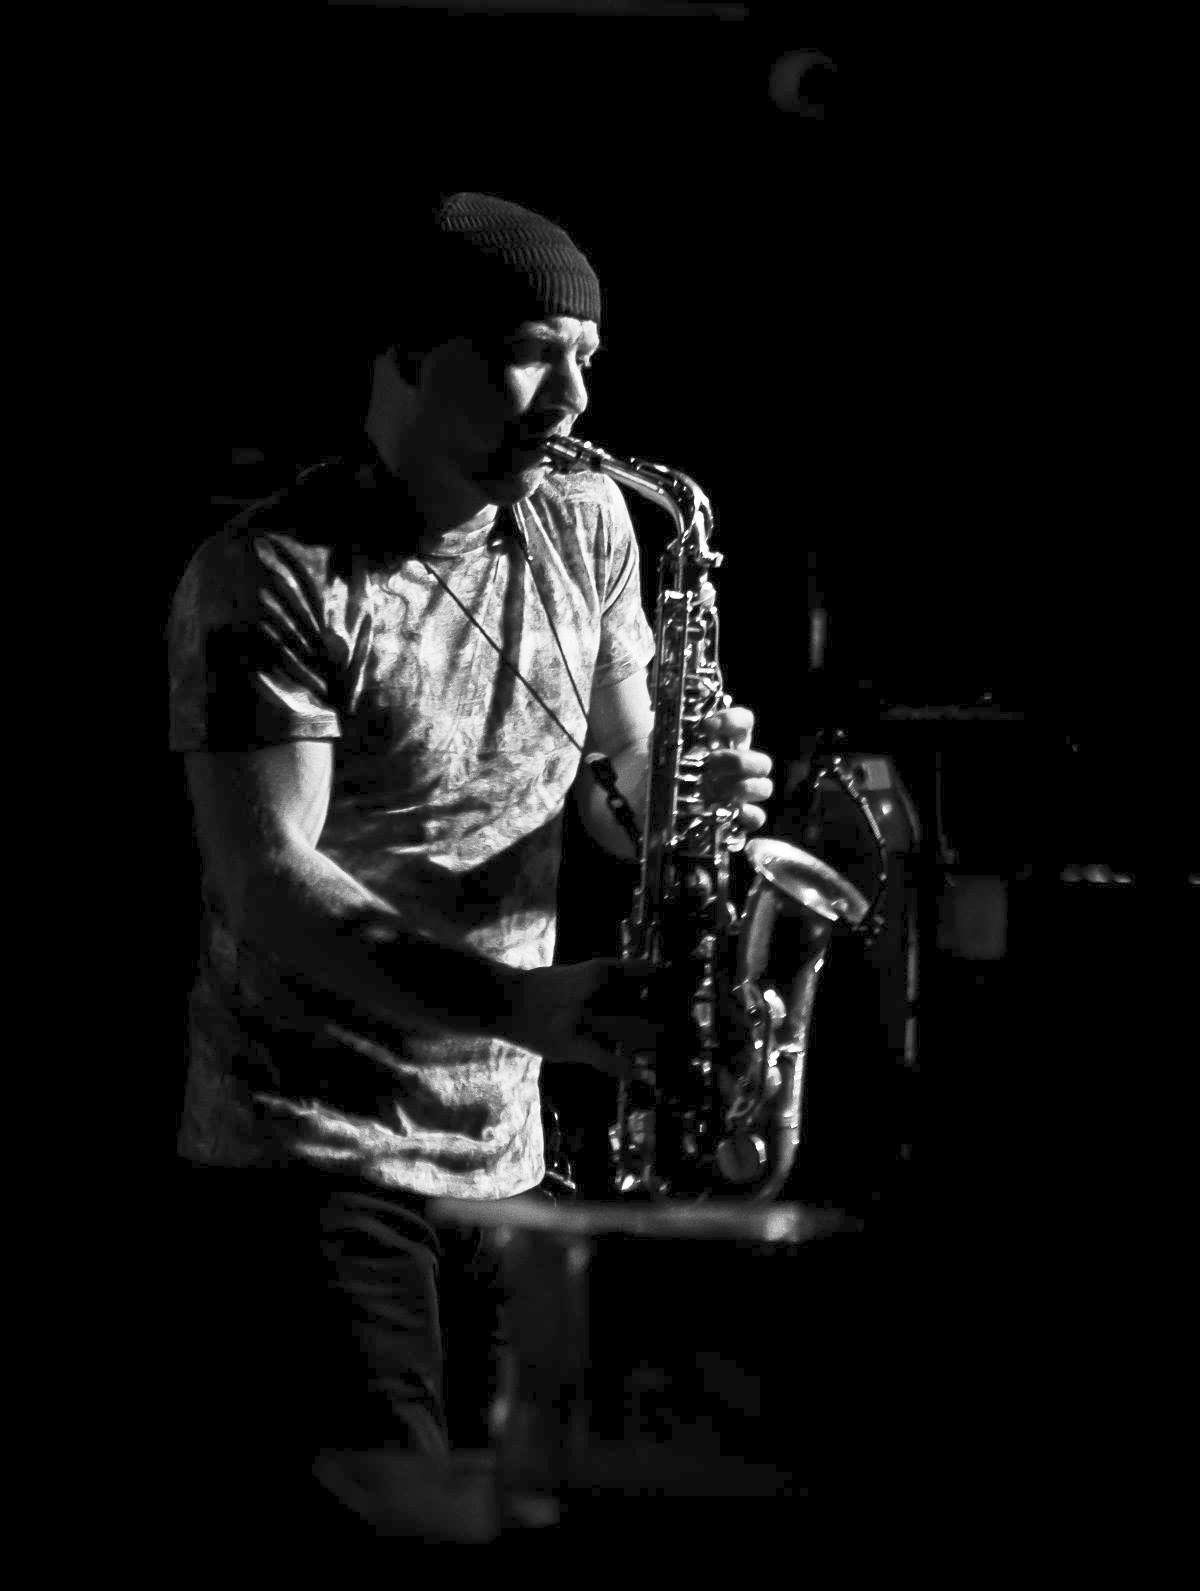 Saxophone player for hire Dublin, Djandsax.ie